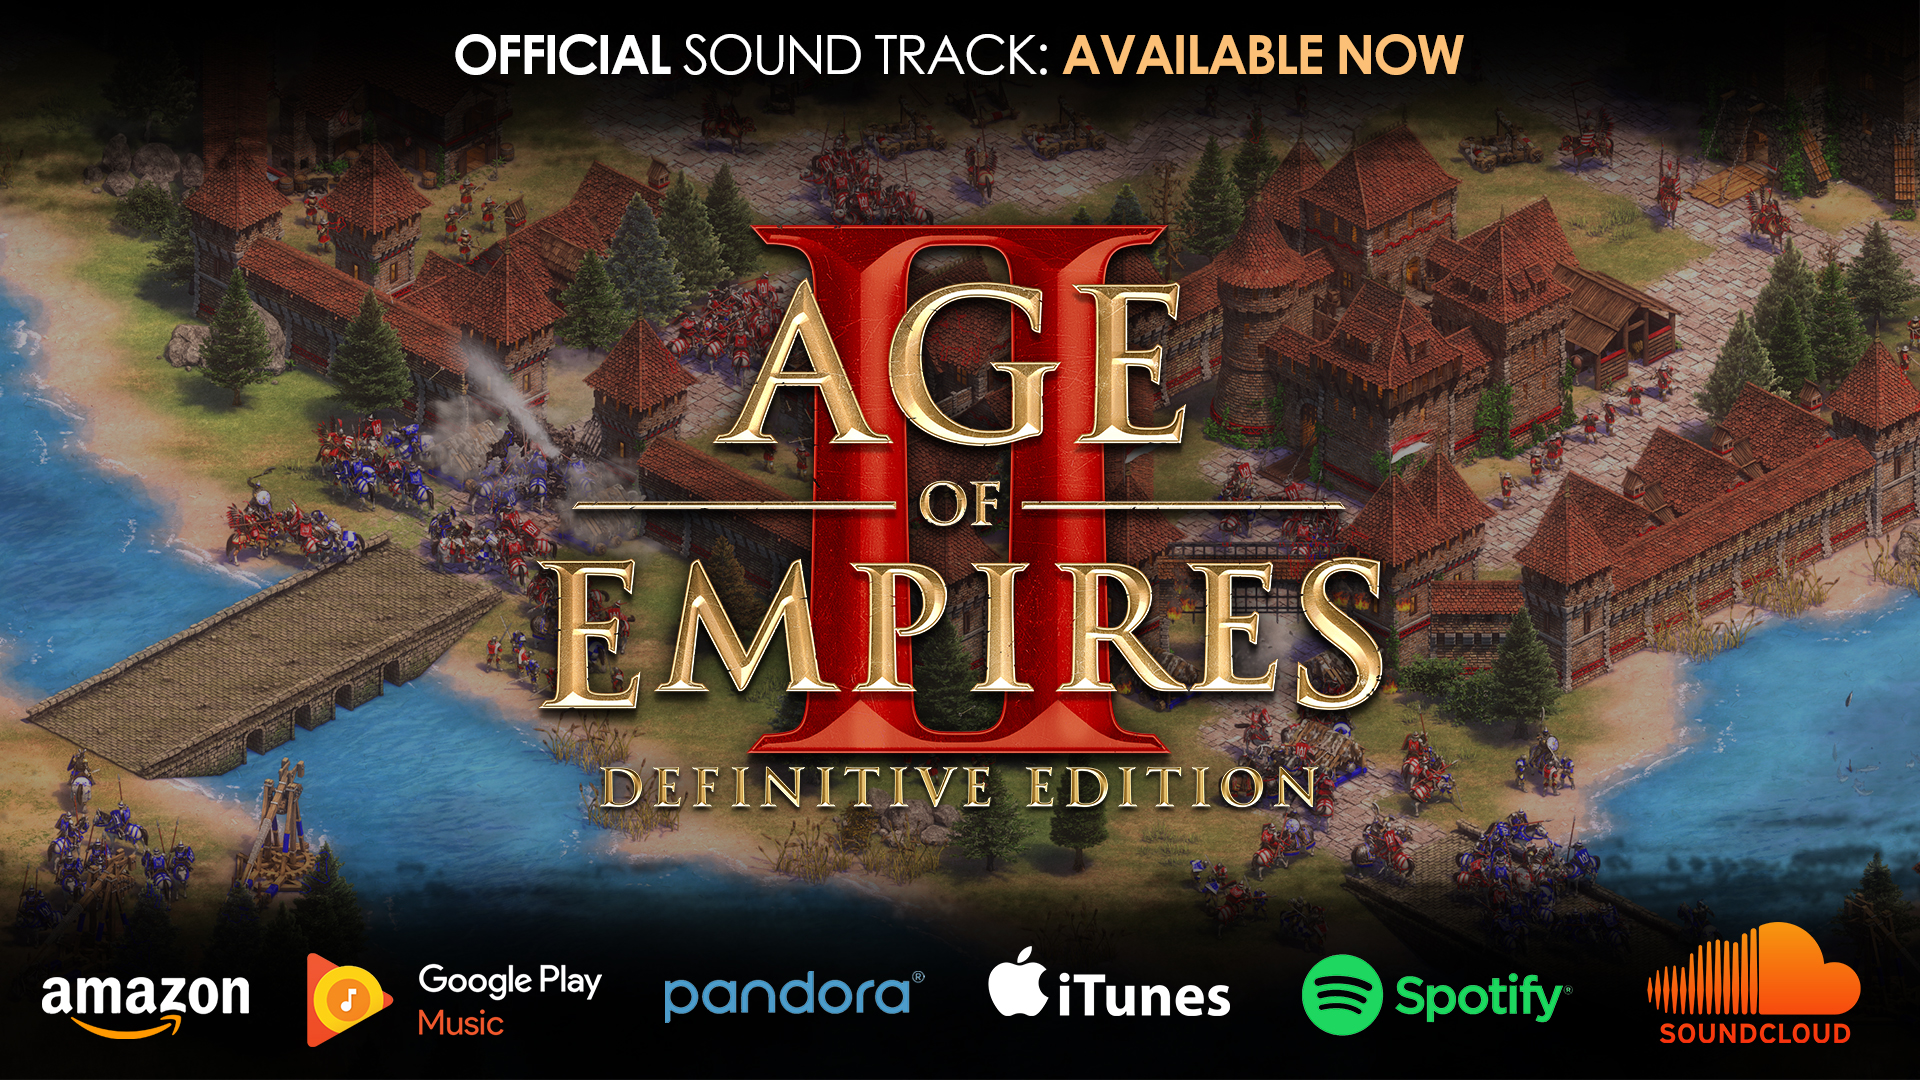 'The Age of Empires II: Definitive Edition Soundtrack is Now Available!' thumbnail